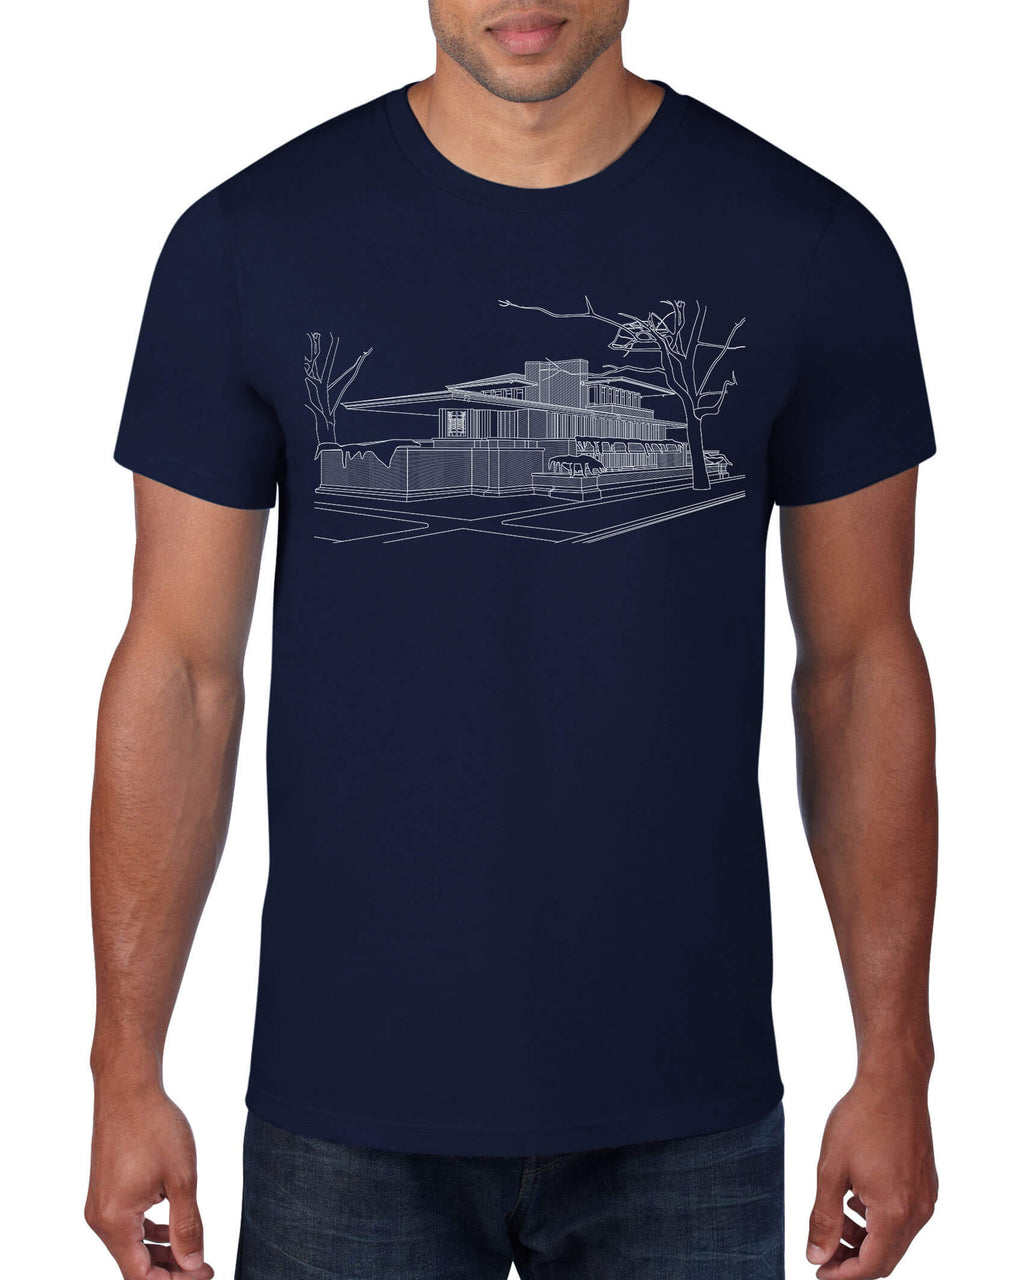 Robie House Architectural Rendering T-Shirt